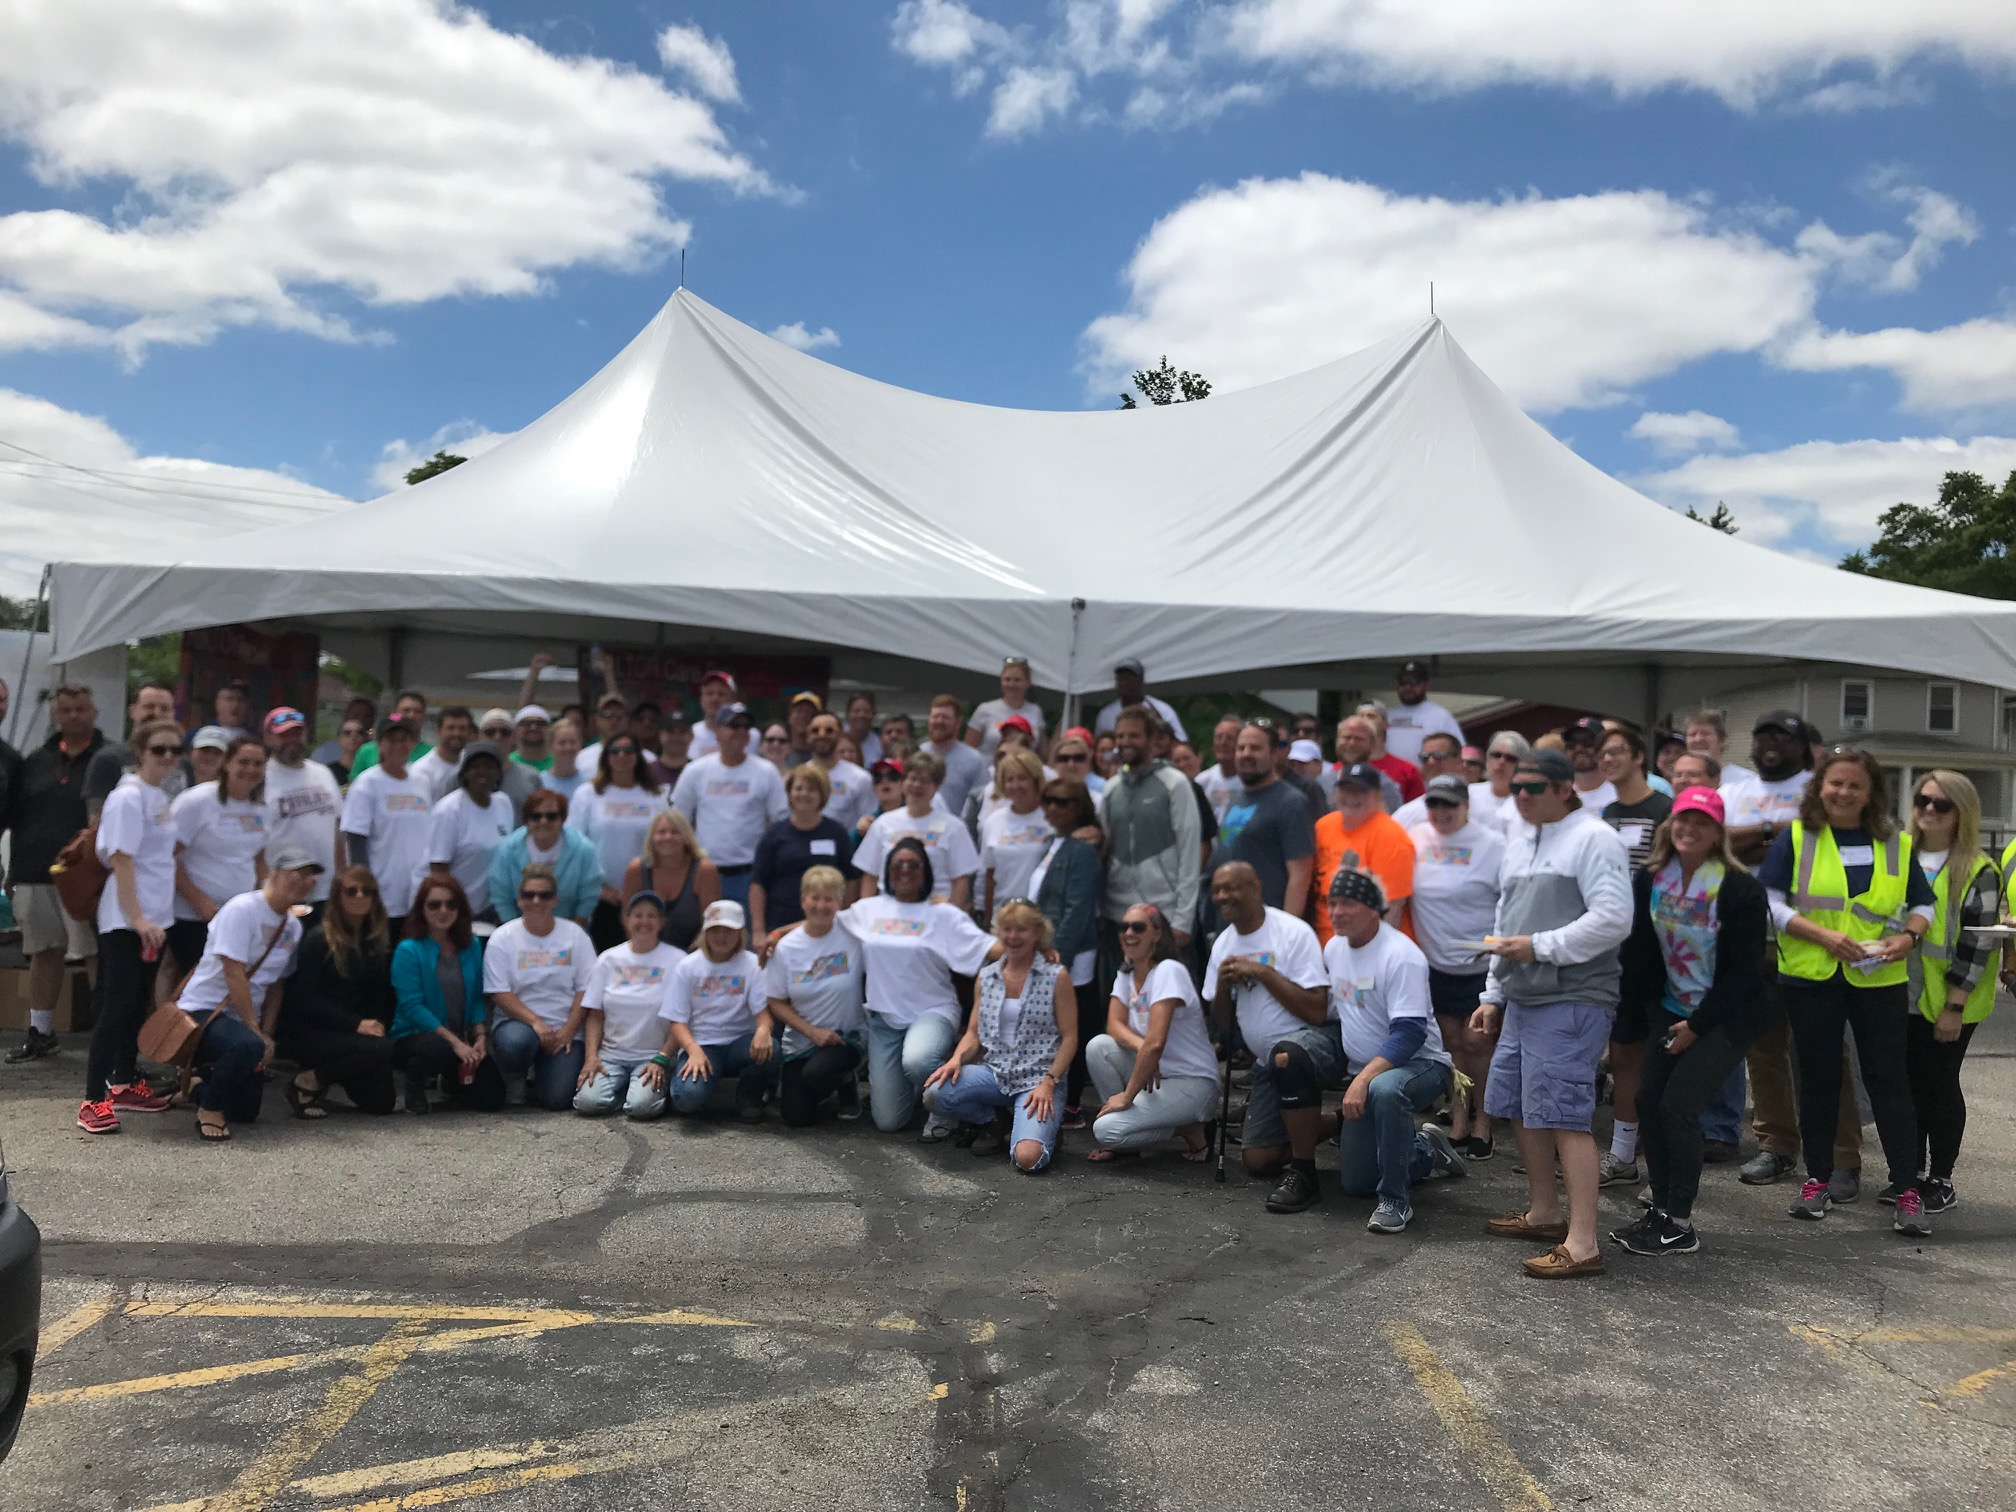 A big focus of Columbus REALTORS Realtor Care Day 2018 was the Milo-Grogan neighborhood, where members made improvements to 17 homes, one business and a community garden. Homeport recently built 33 affordable lease to purchase homes in Milo-Grogan as part of a revitalization initiative.